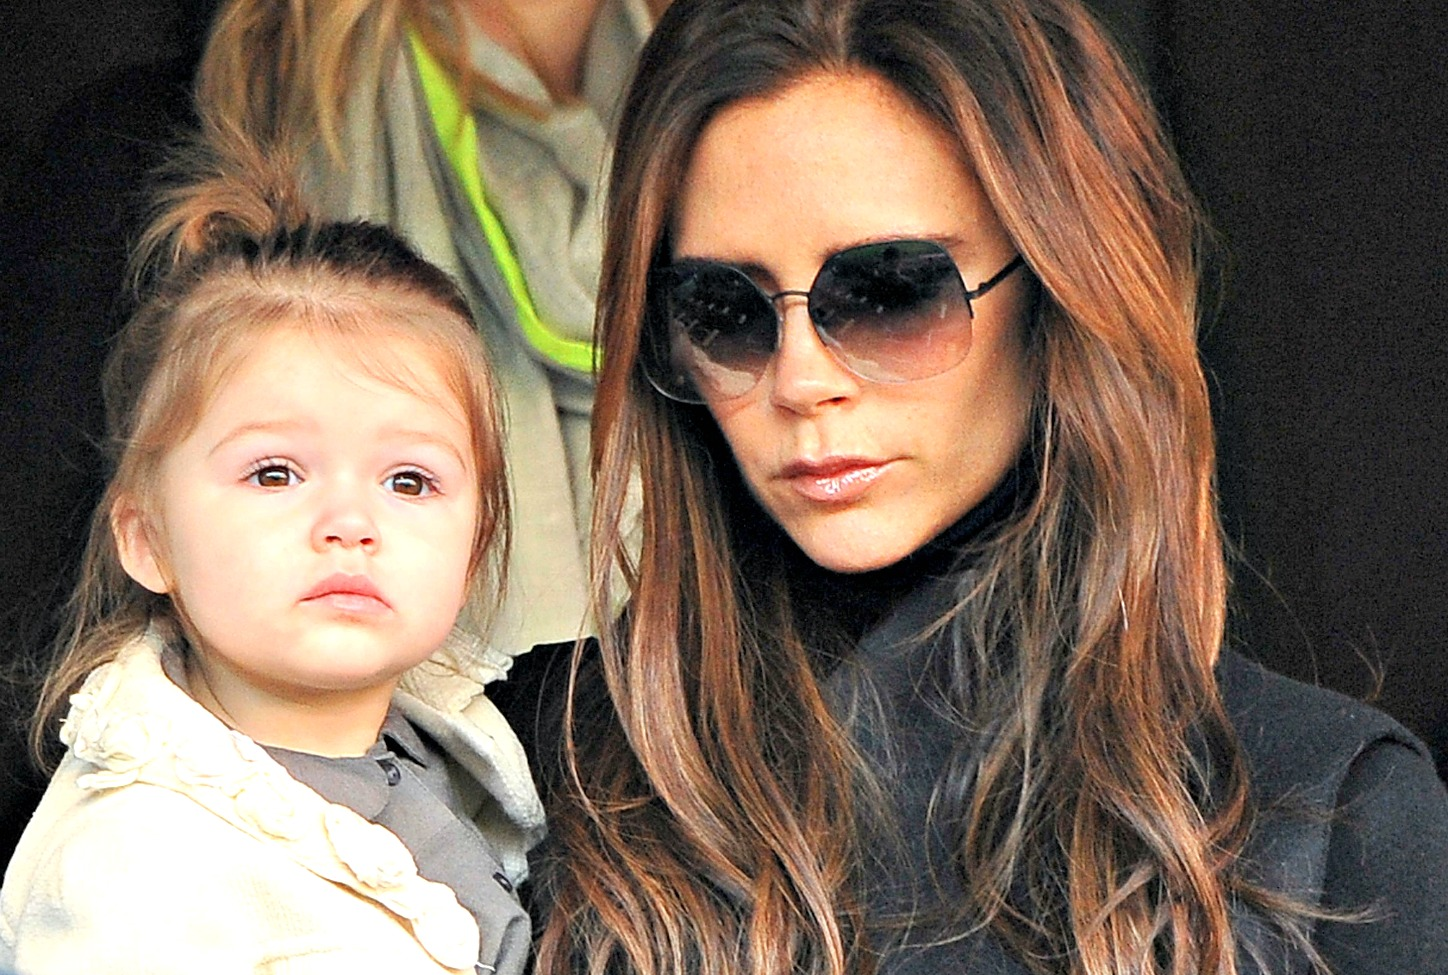 Victoria Beckham condecorada pelo Duque de Cambridge